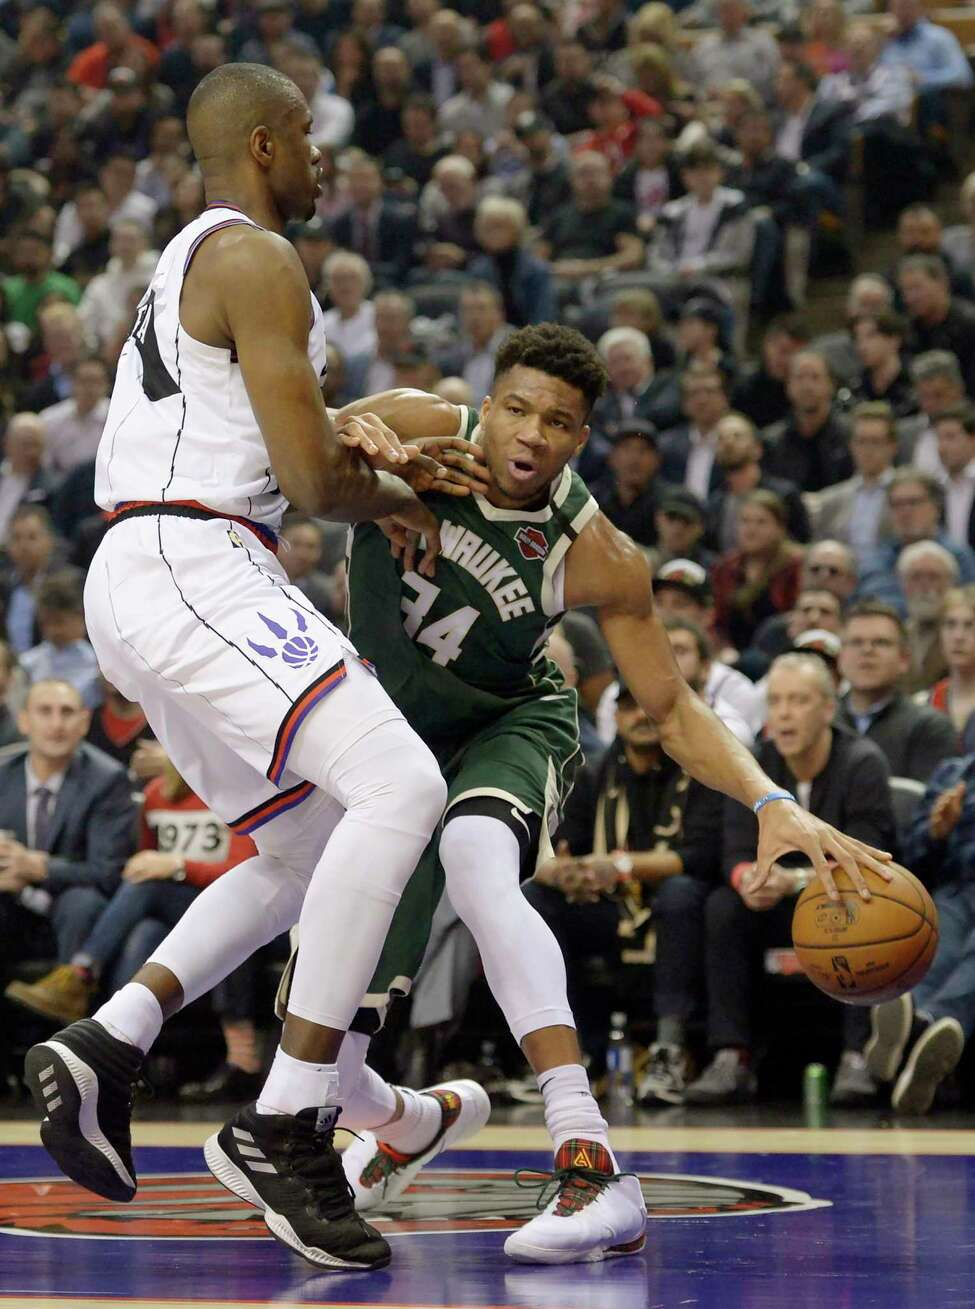 Milwaukee Bucks forward Giannis Antetokounmpo (34) tries to get around Toronto Raptors center Serge Ibaka during the first half of an NBA basketball game Tuesday, Feb. 25, 2020, in Toronto. (Nathan Denette/The Canadian Press via AP)